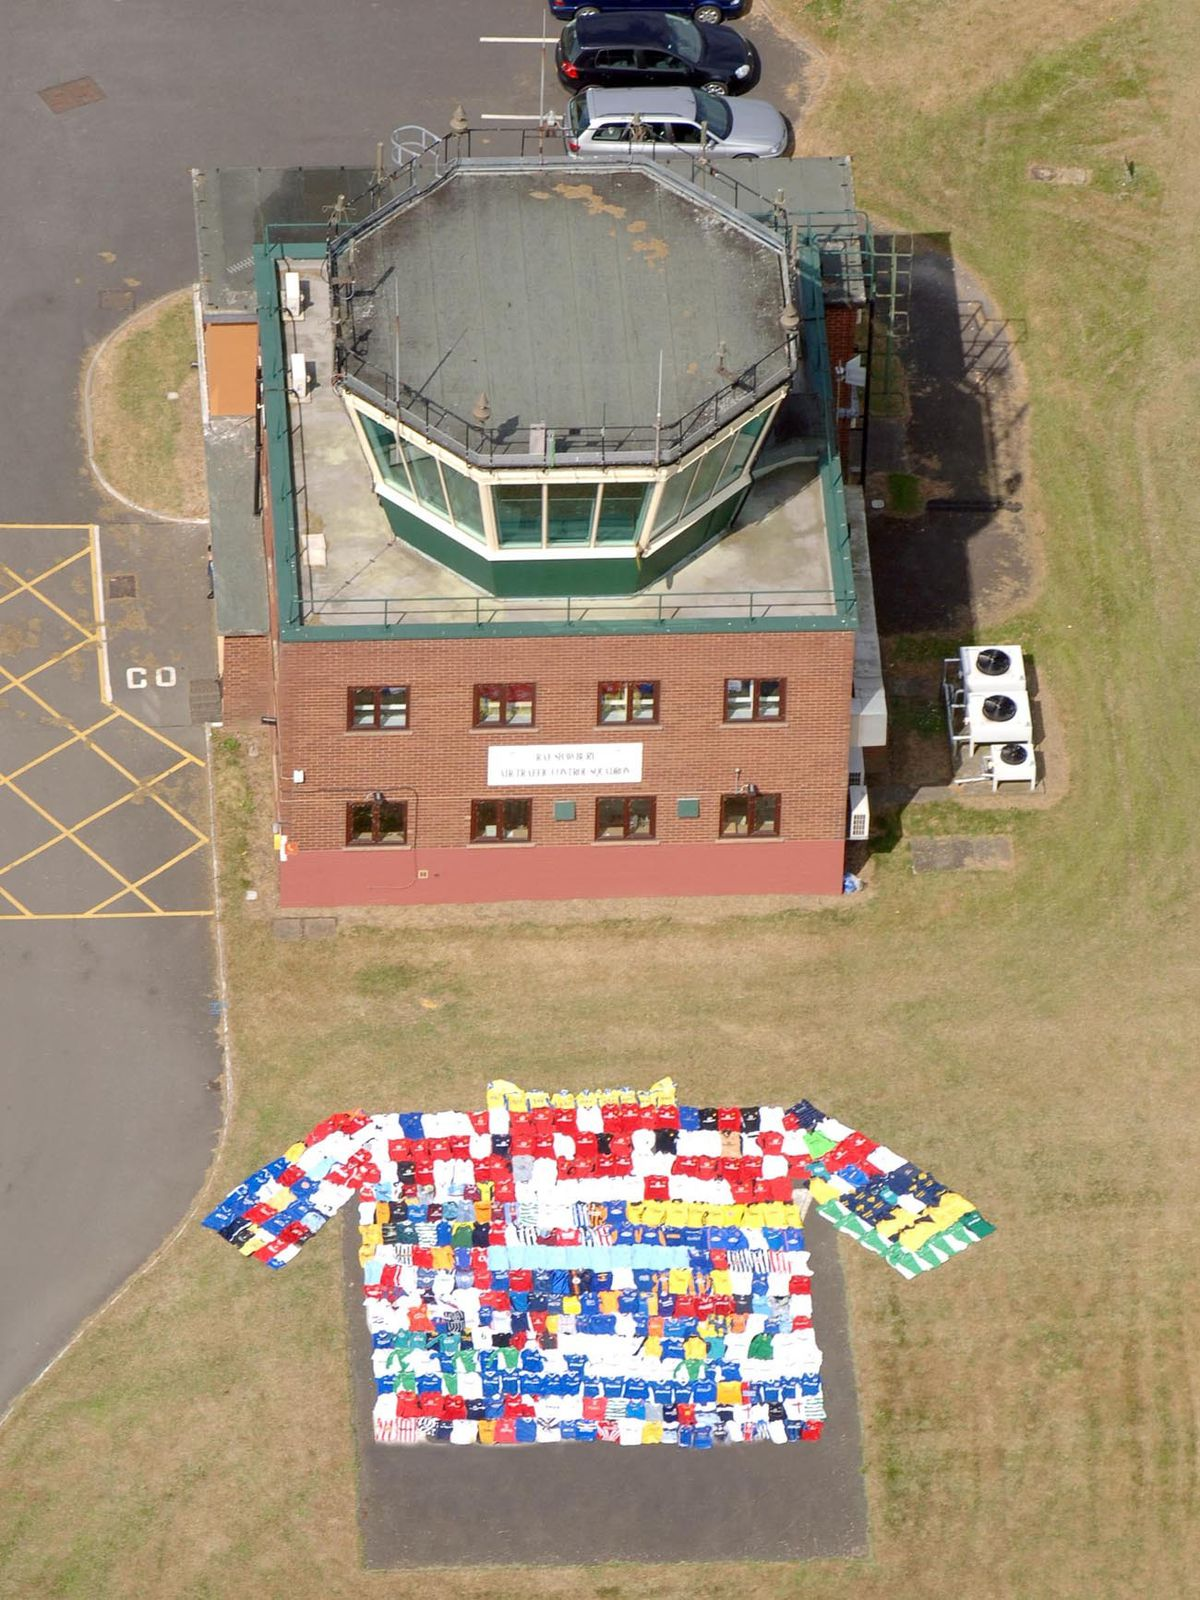 An aerial view of some of the football shirts outside the air traffic control tower at RAF Shawbury, Shropshire. Picture: Iain Thompson